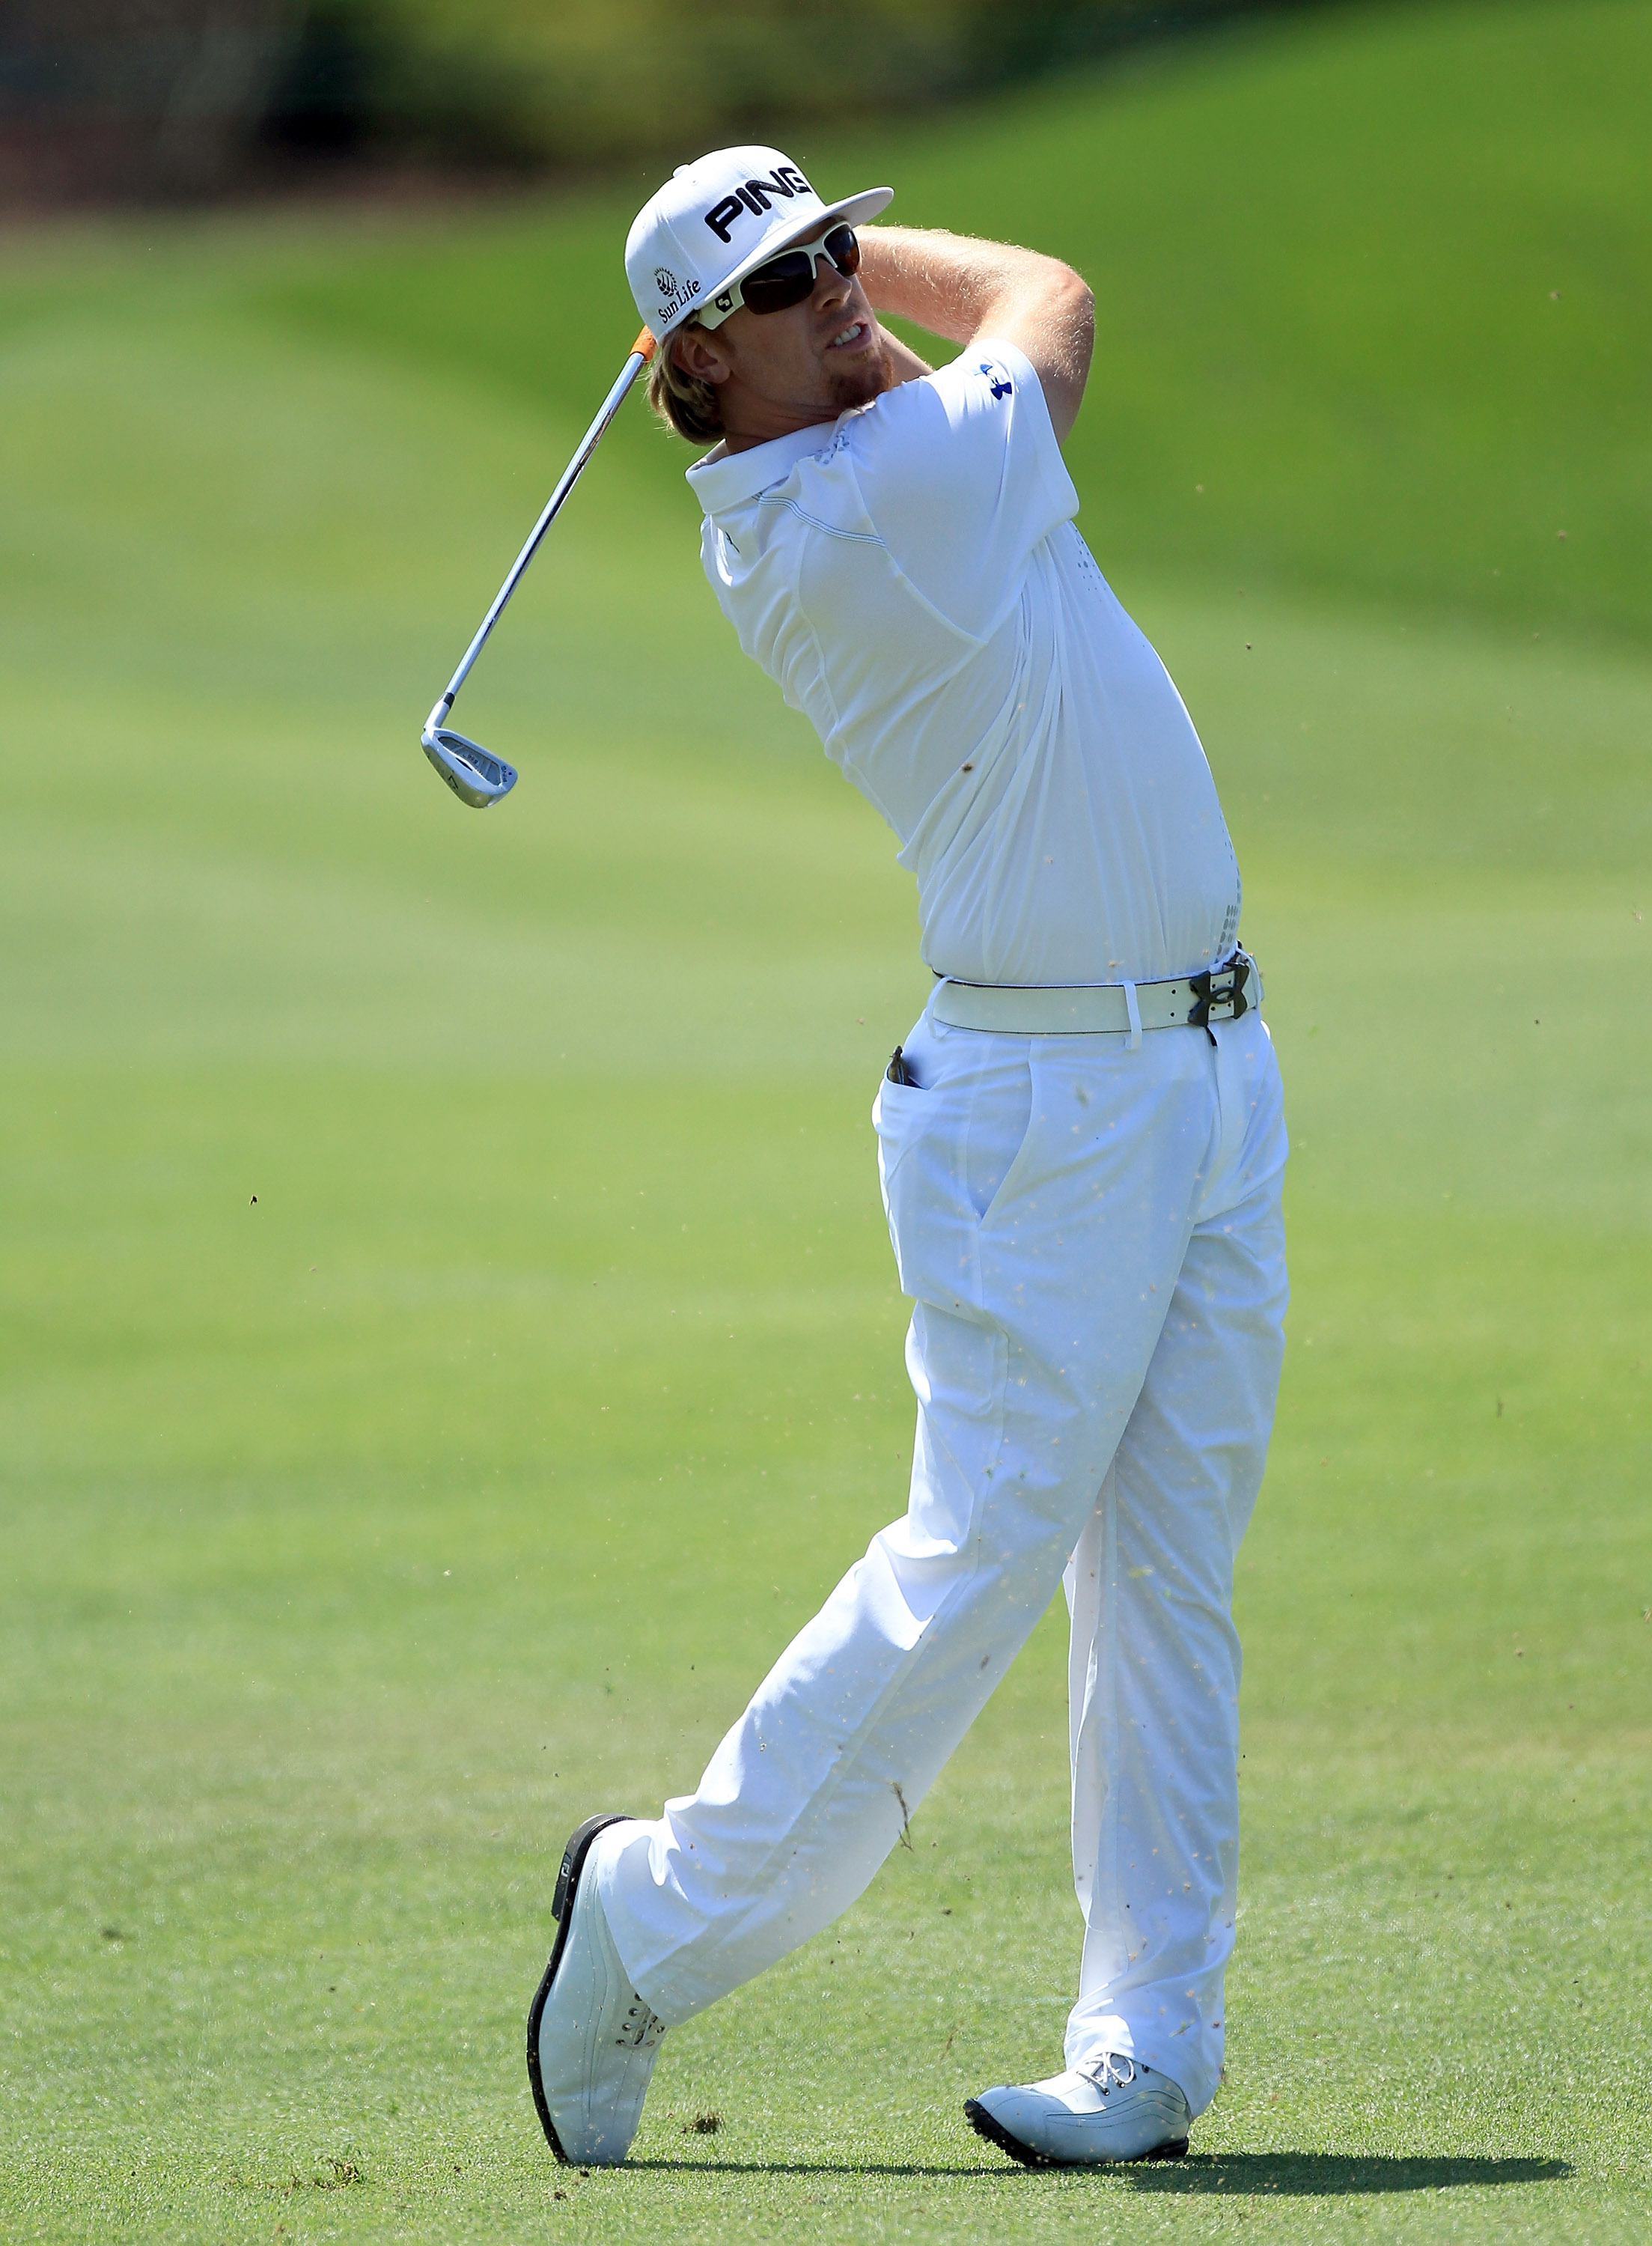 ORLANDO, FL - MARCH 26:  Hunter Mahan of the USA plays his second shot at the 1st hole during the third round of the 2011 Arnold Palmer Invitational presented by Mastercard at the Bay Hill Lodge and Country Club on March 26, 2011 in Orlando, Florida.  (Ph